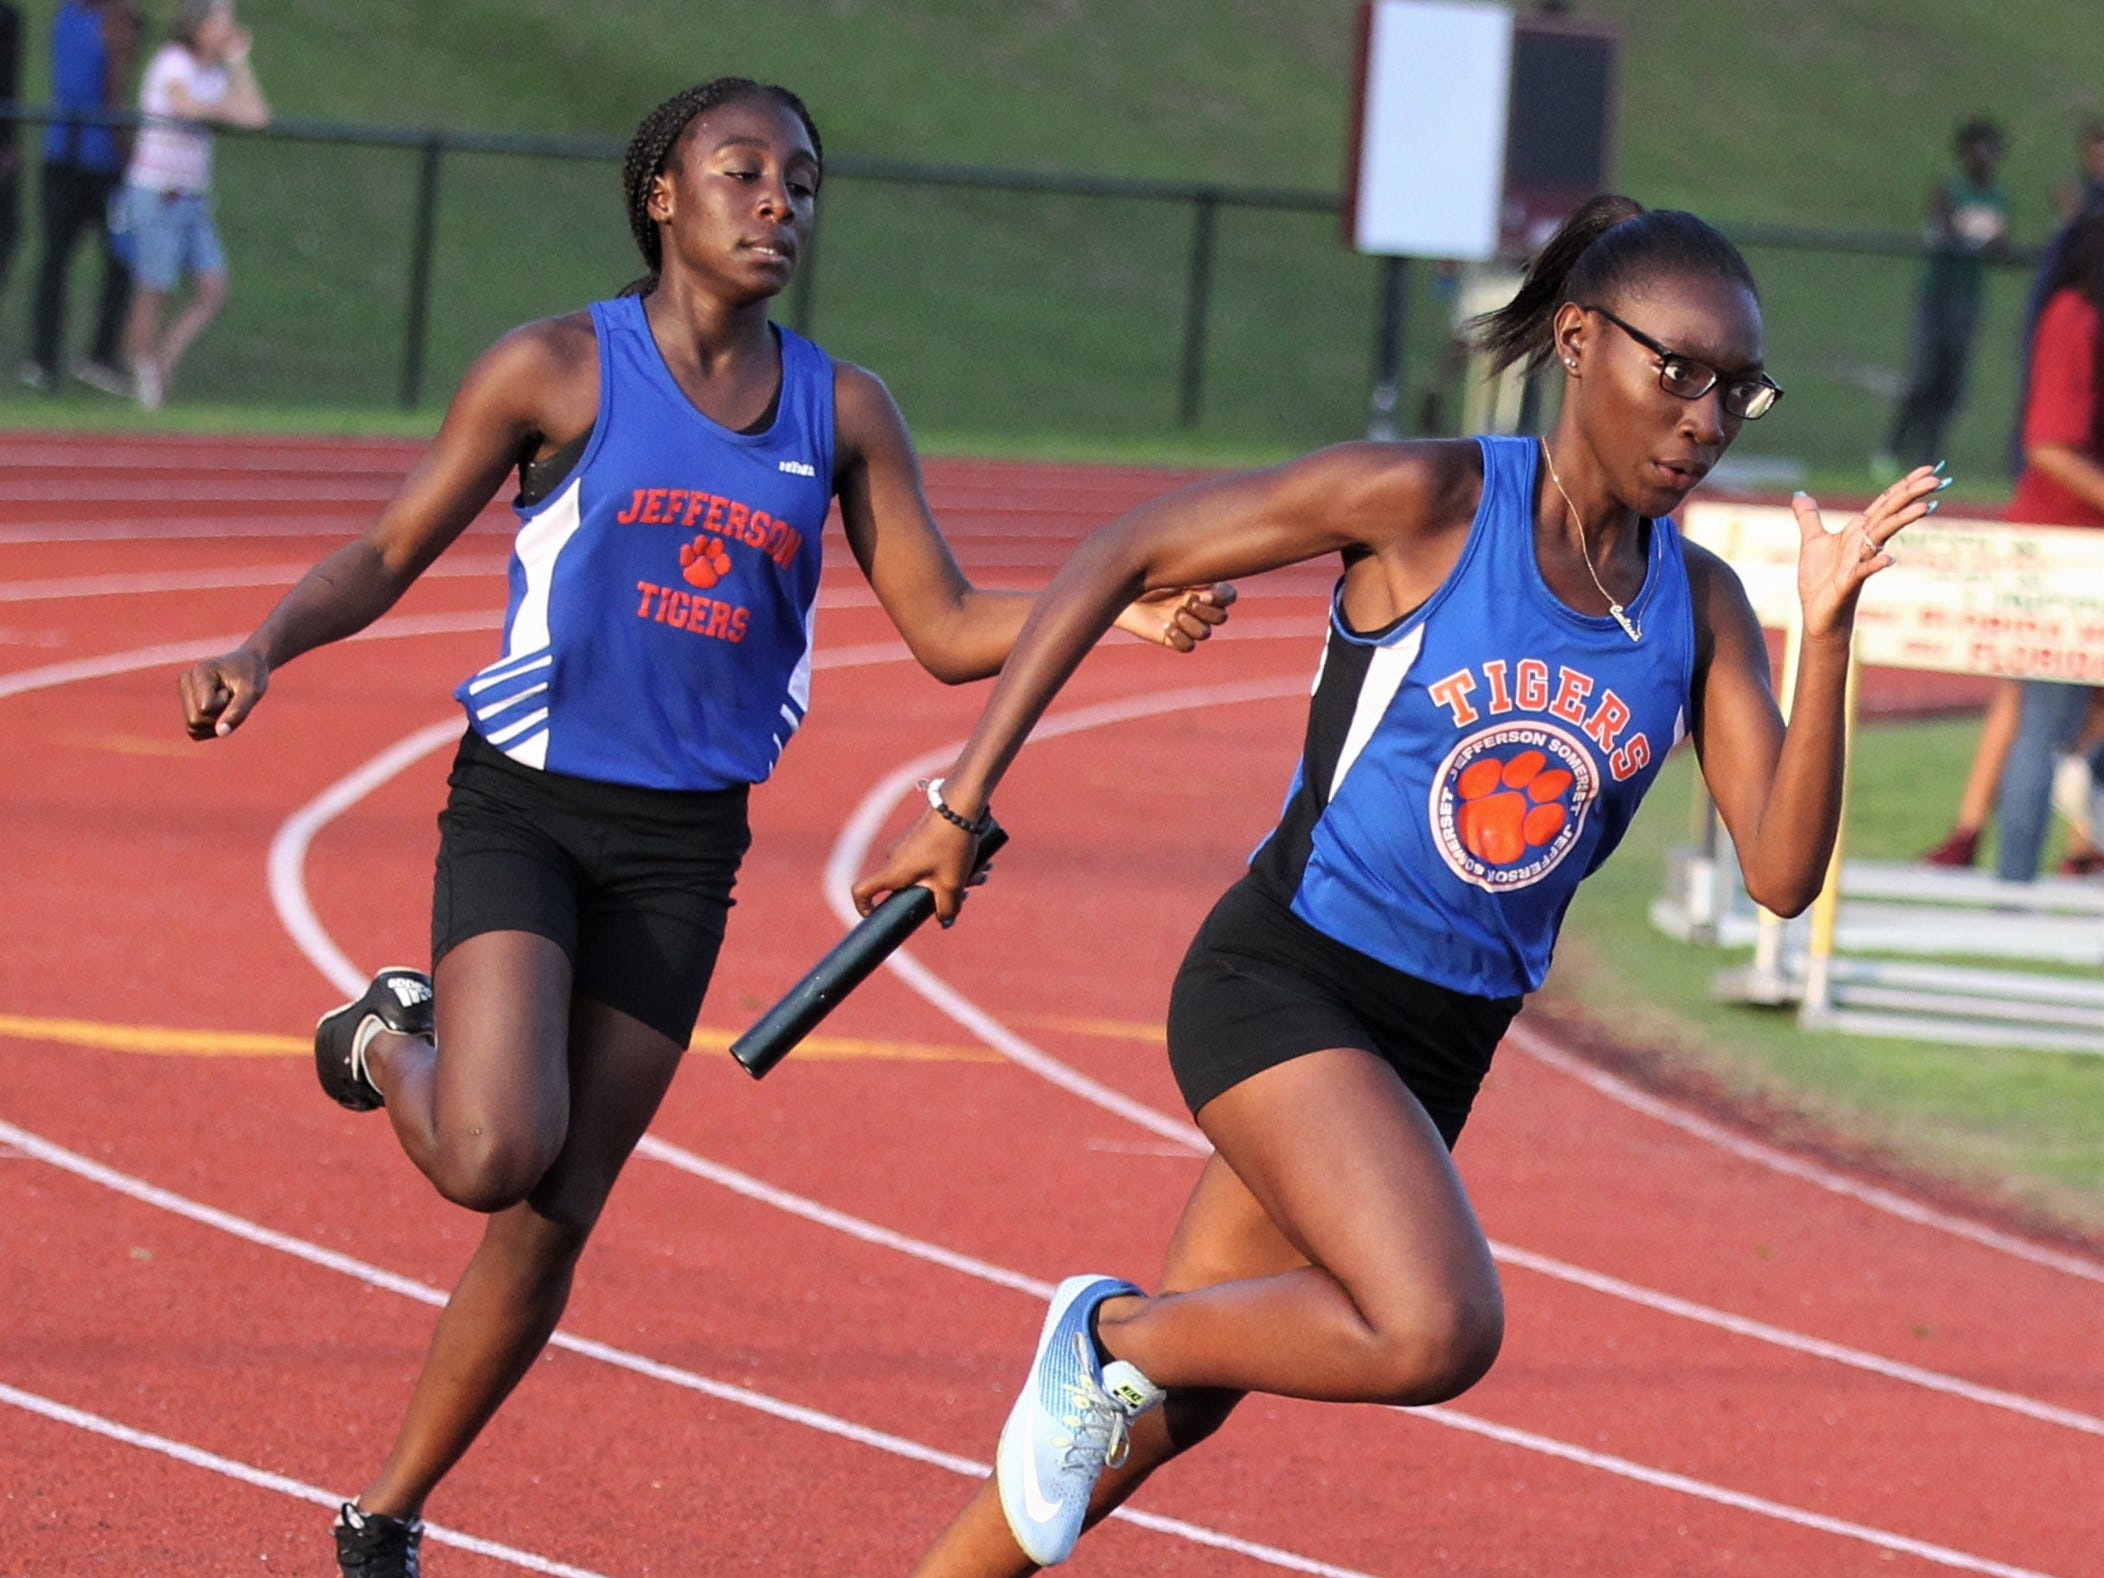 District 3-1A and 2-2A track and field meets at Florida High on Saturday, April 13, 2019.